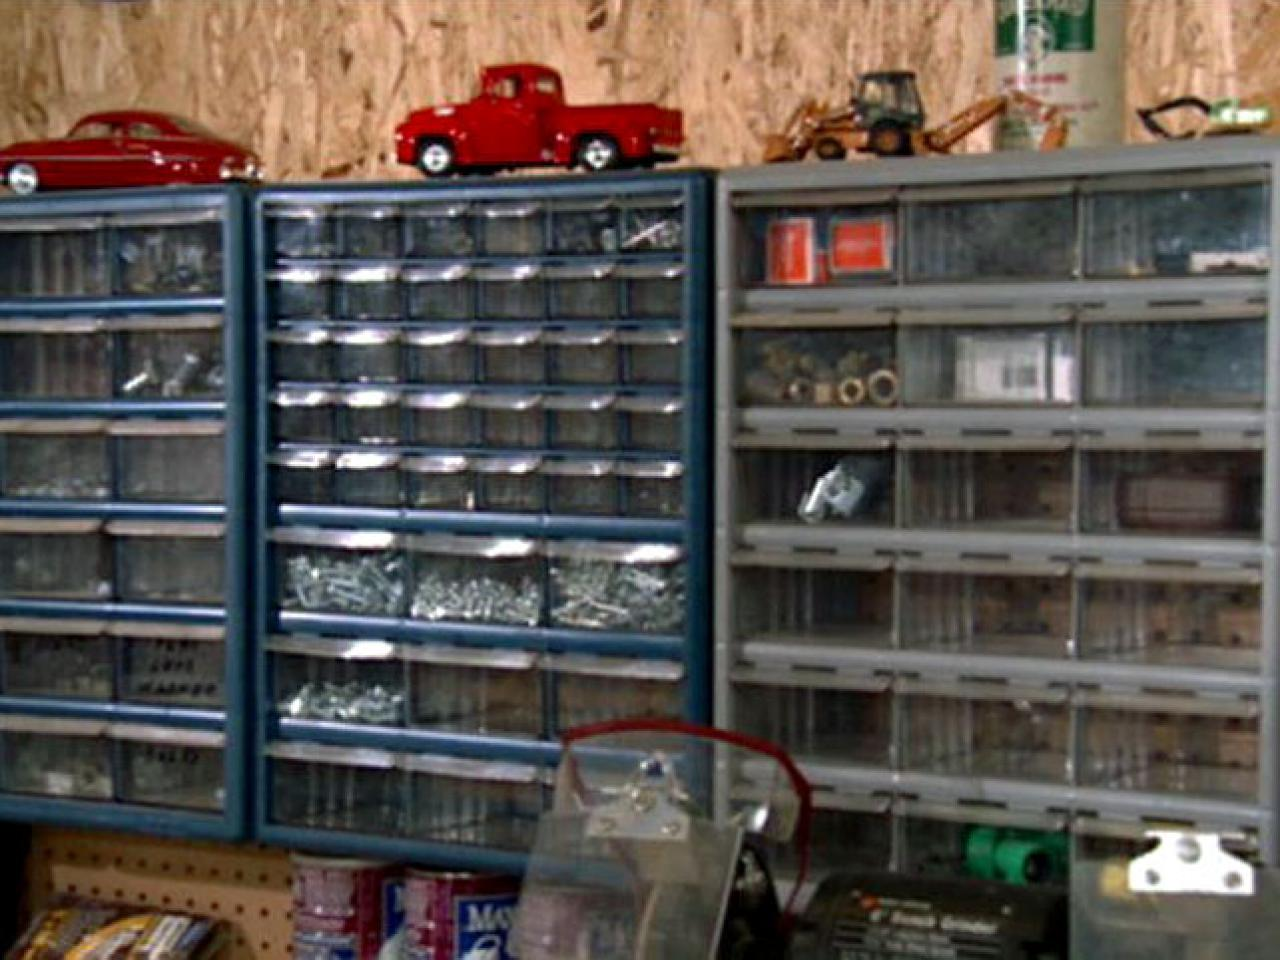 Organizing small items in a workshop diy - Small workshop storage ideas ...